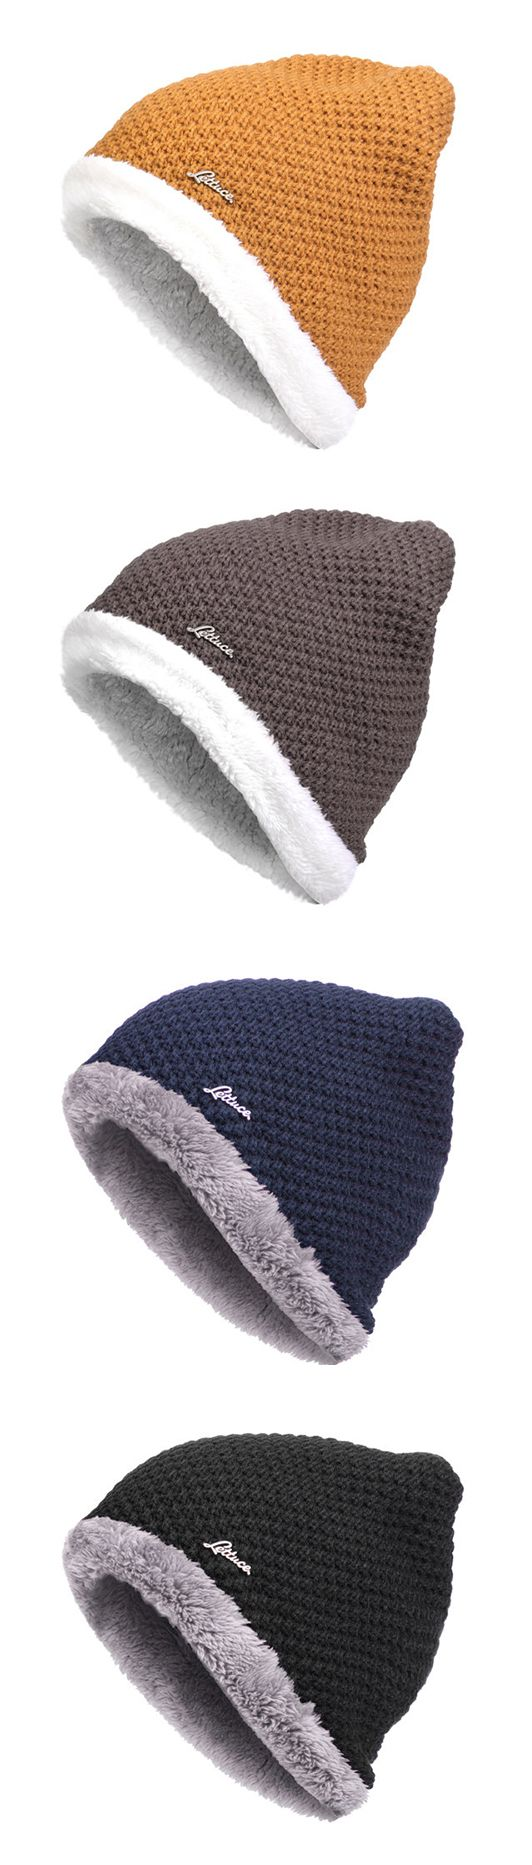 ee8589fc9e6c86 Mens Warm Lining Coral Fleece Beanie Hat/Knitted Hat #outdoor #outfit